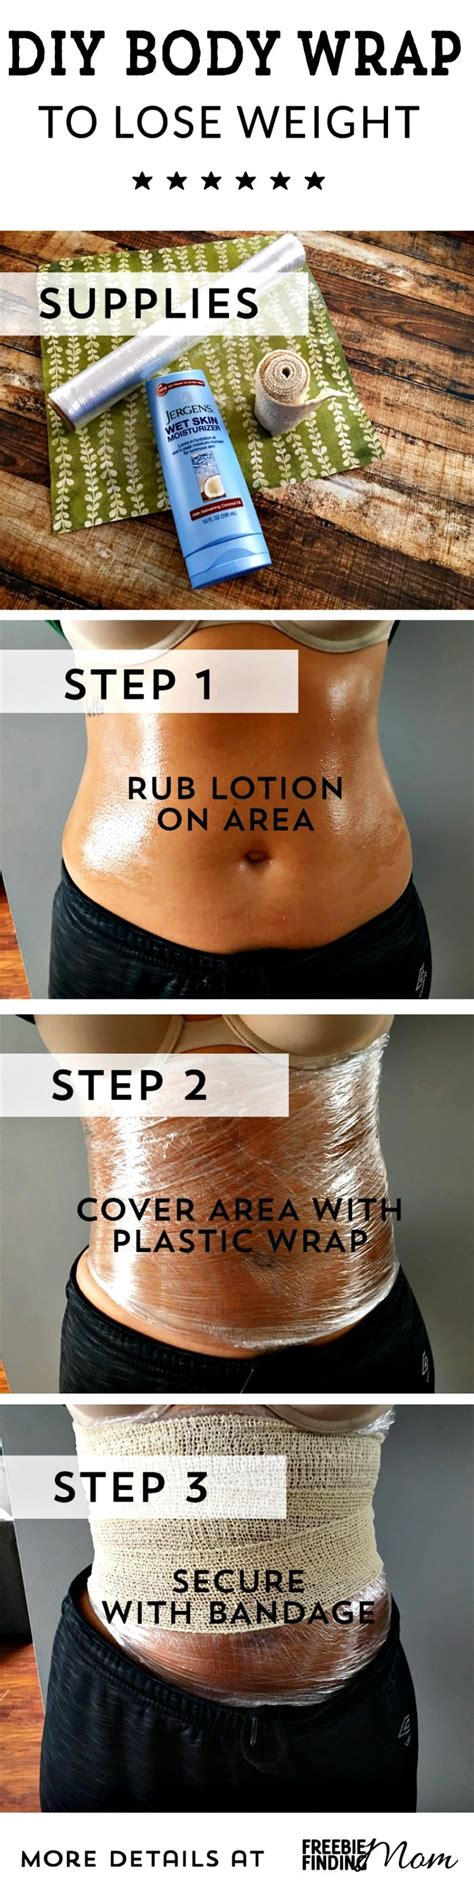 Wrap Your Package Ae Not What You Think At Smile by Diy Lose Weight Wraps To Shed Pounds